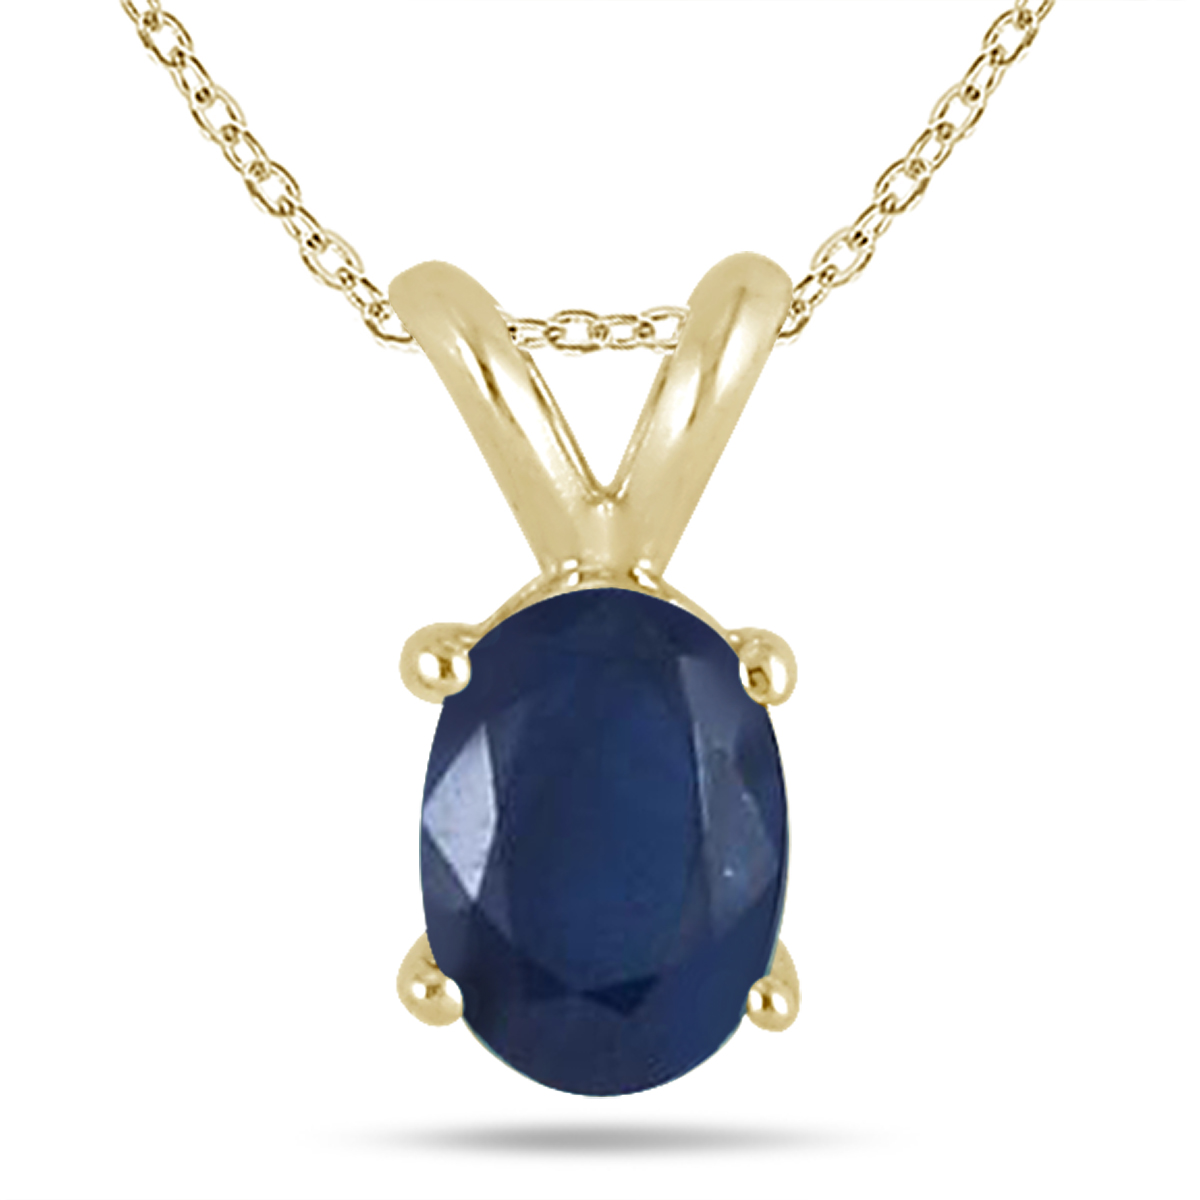 All-Natural Genuine 6x4 mm, Oval Sapphire pendant